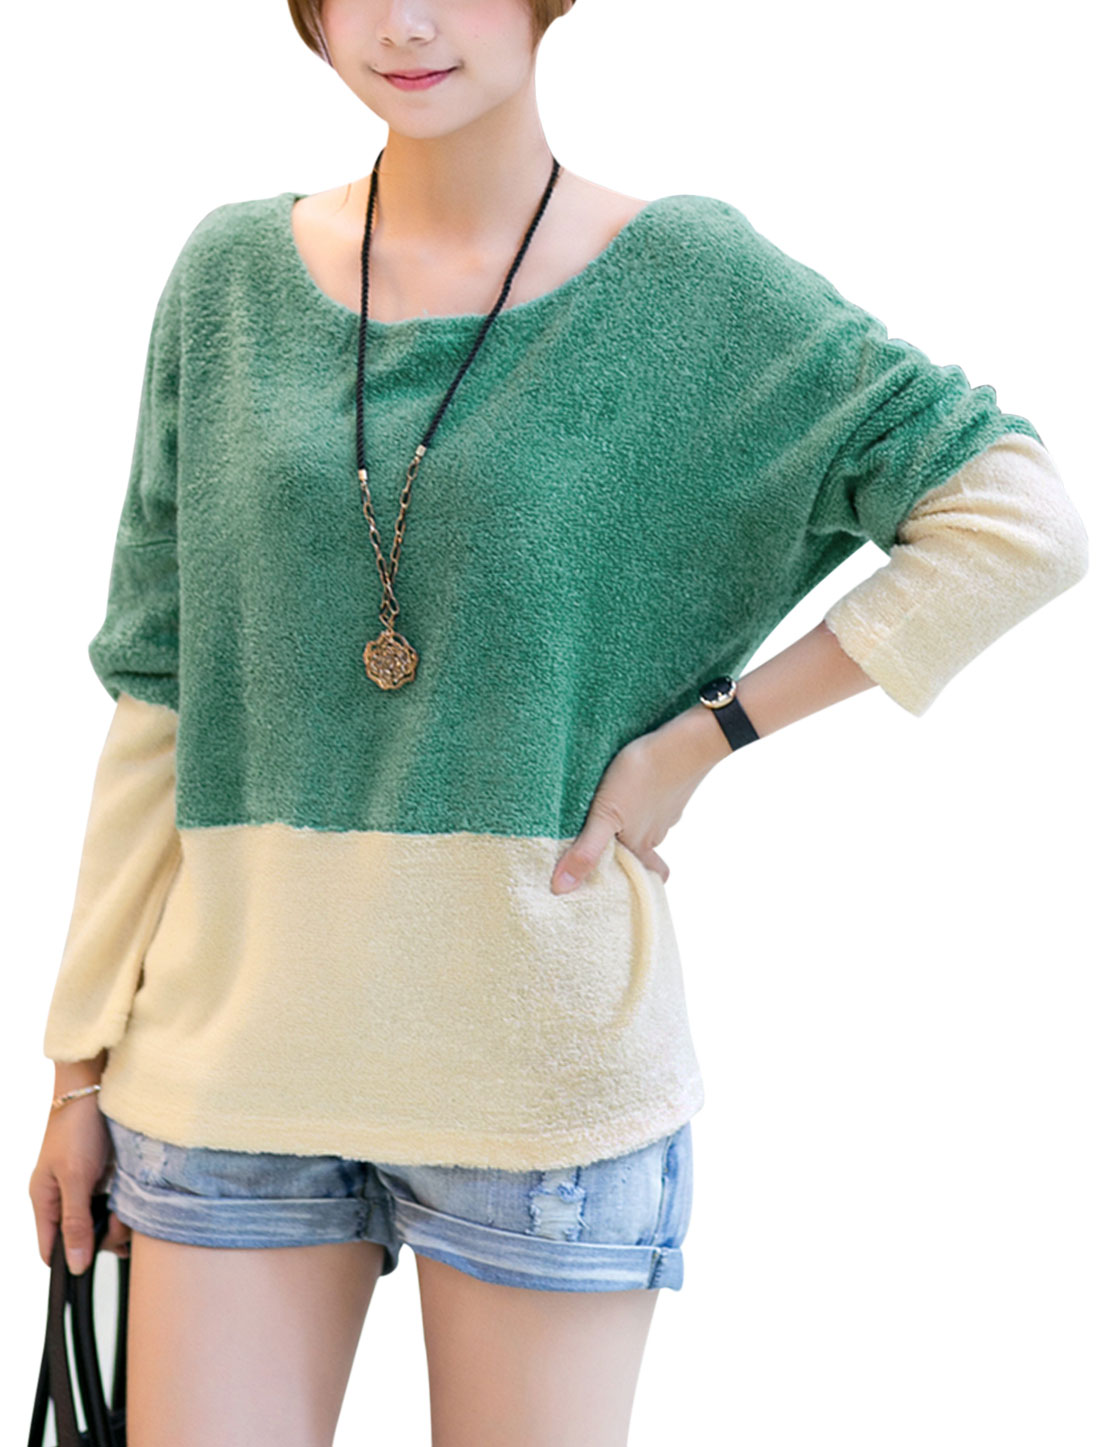 Lady Round Neck Long Batwing Sleeve Colorblock Knit Shirt Beige Green M